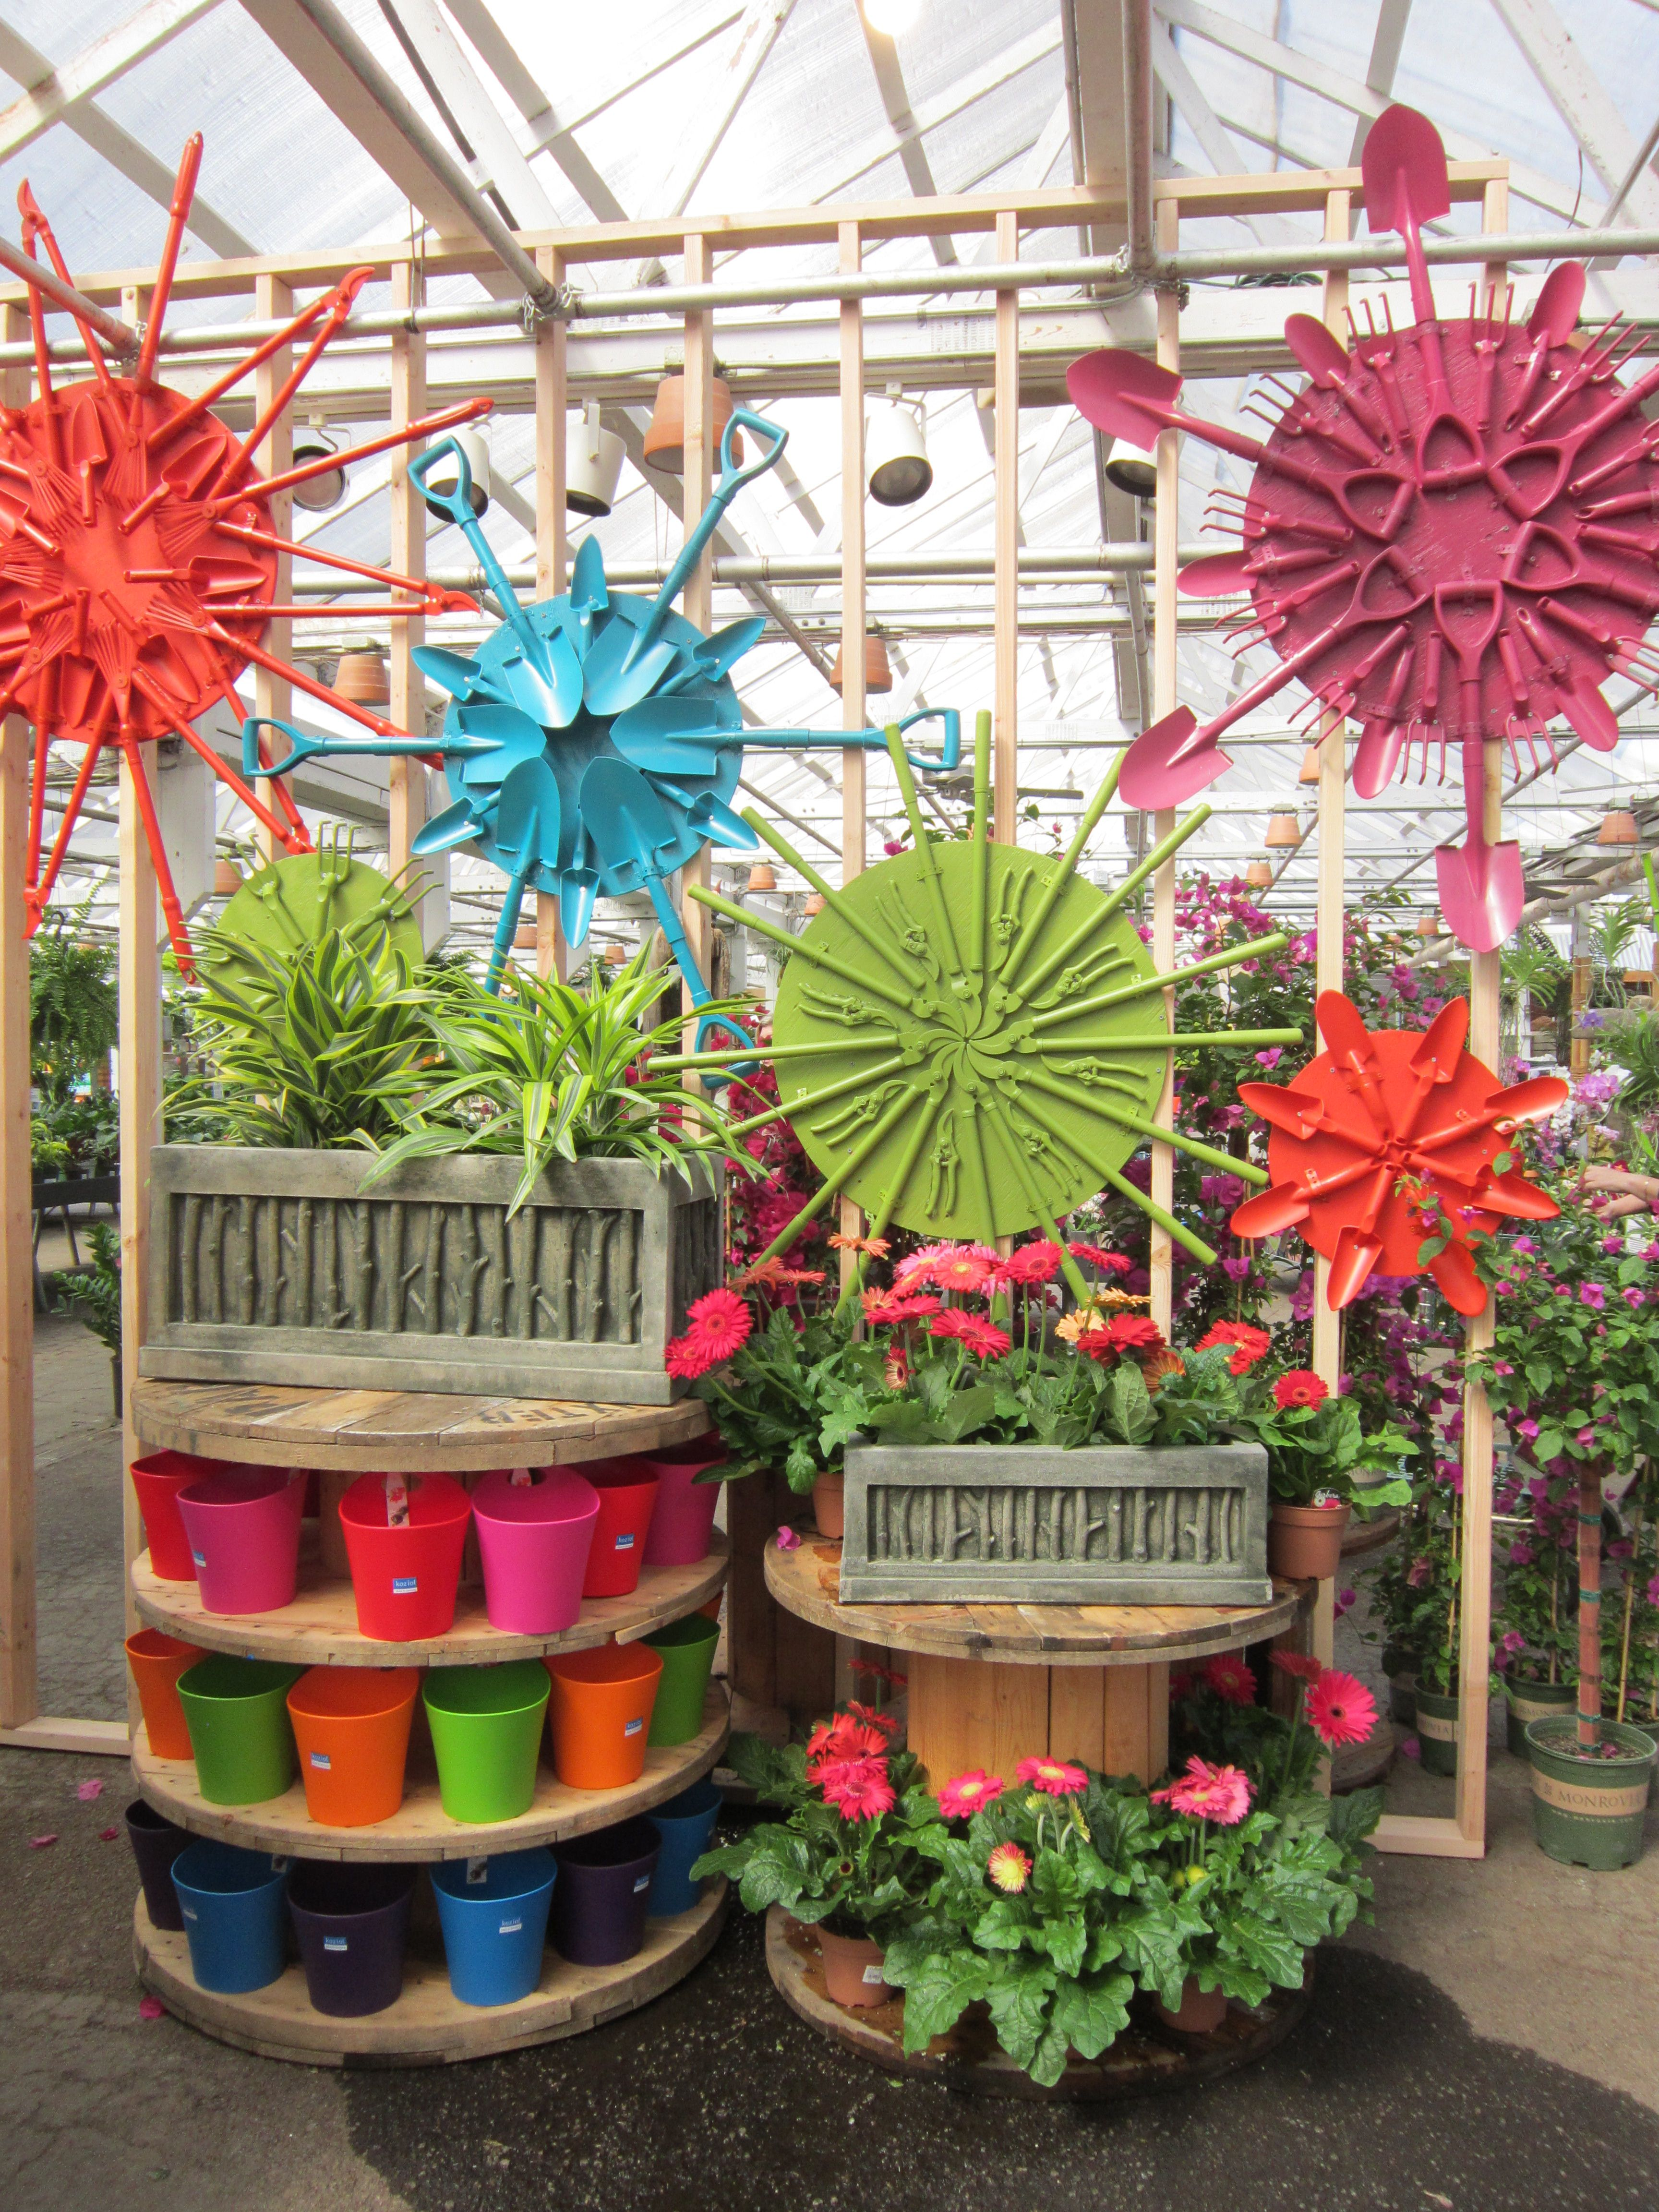 Beauty Blooms Flowers Constructed From Garden Tools Visual Merchandising Vm Retail Store Display Garden Garden Center Displays Garden Tools Plant Nursery